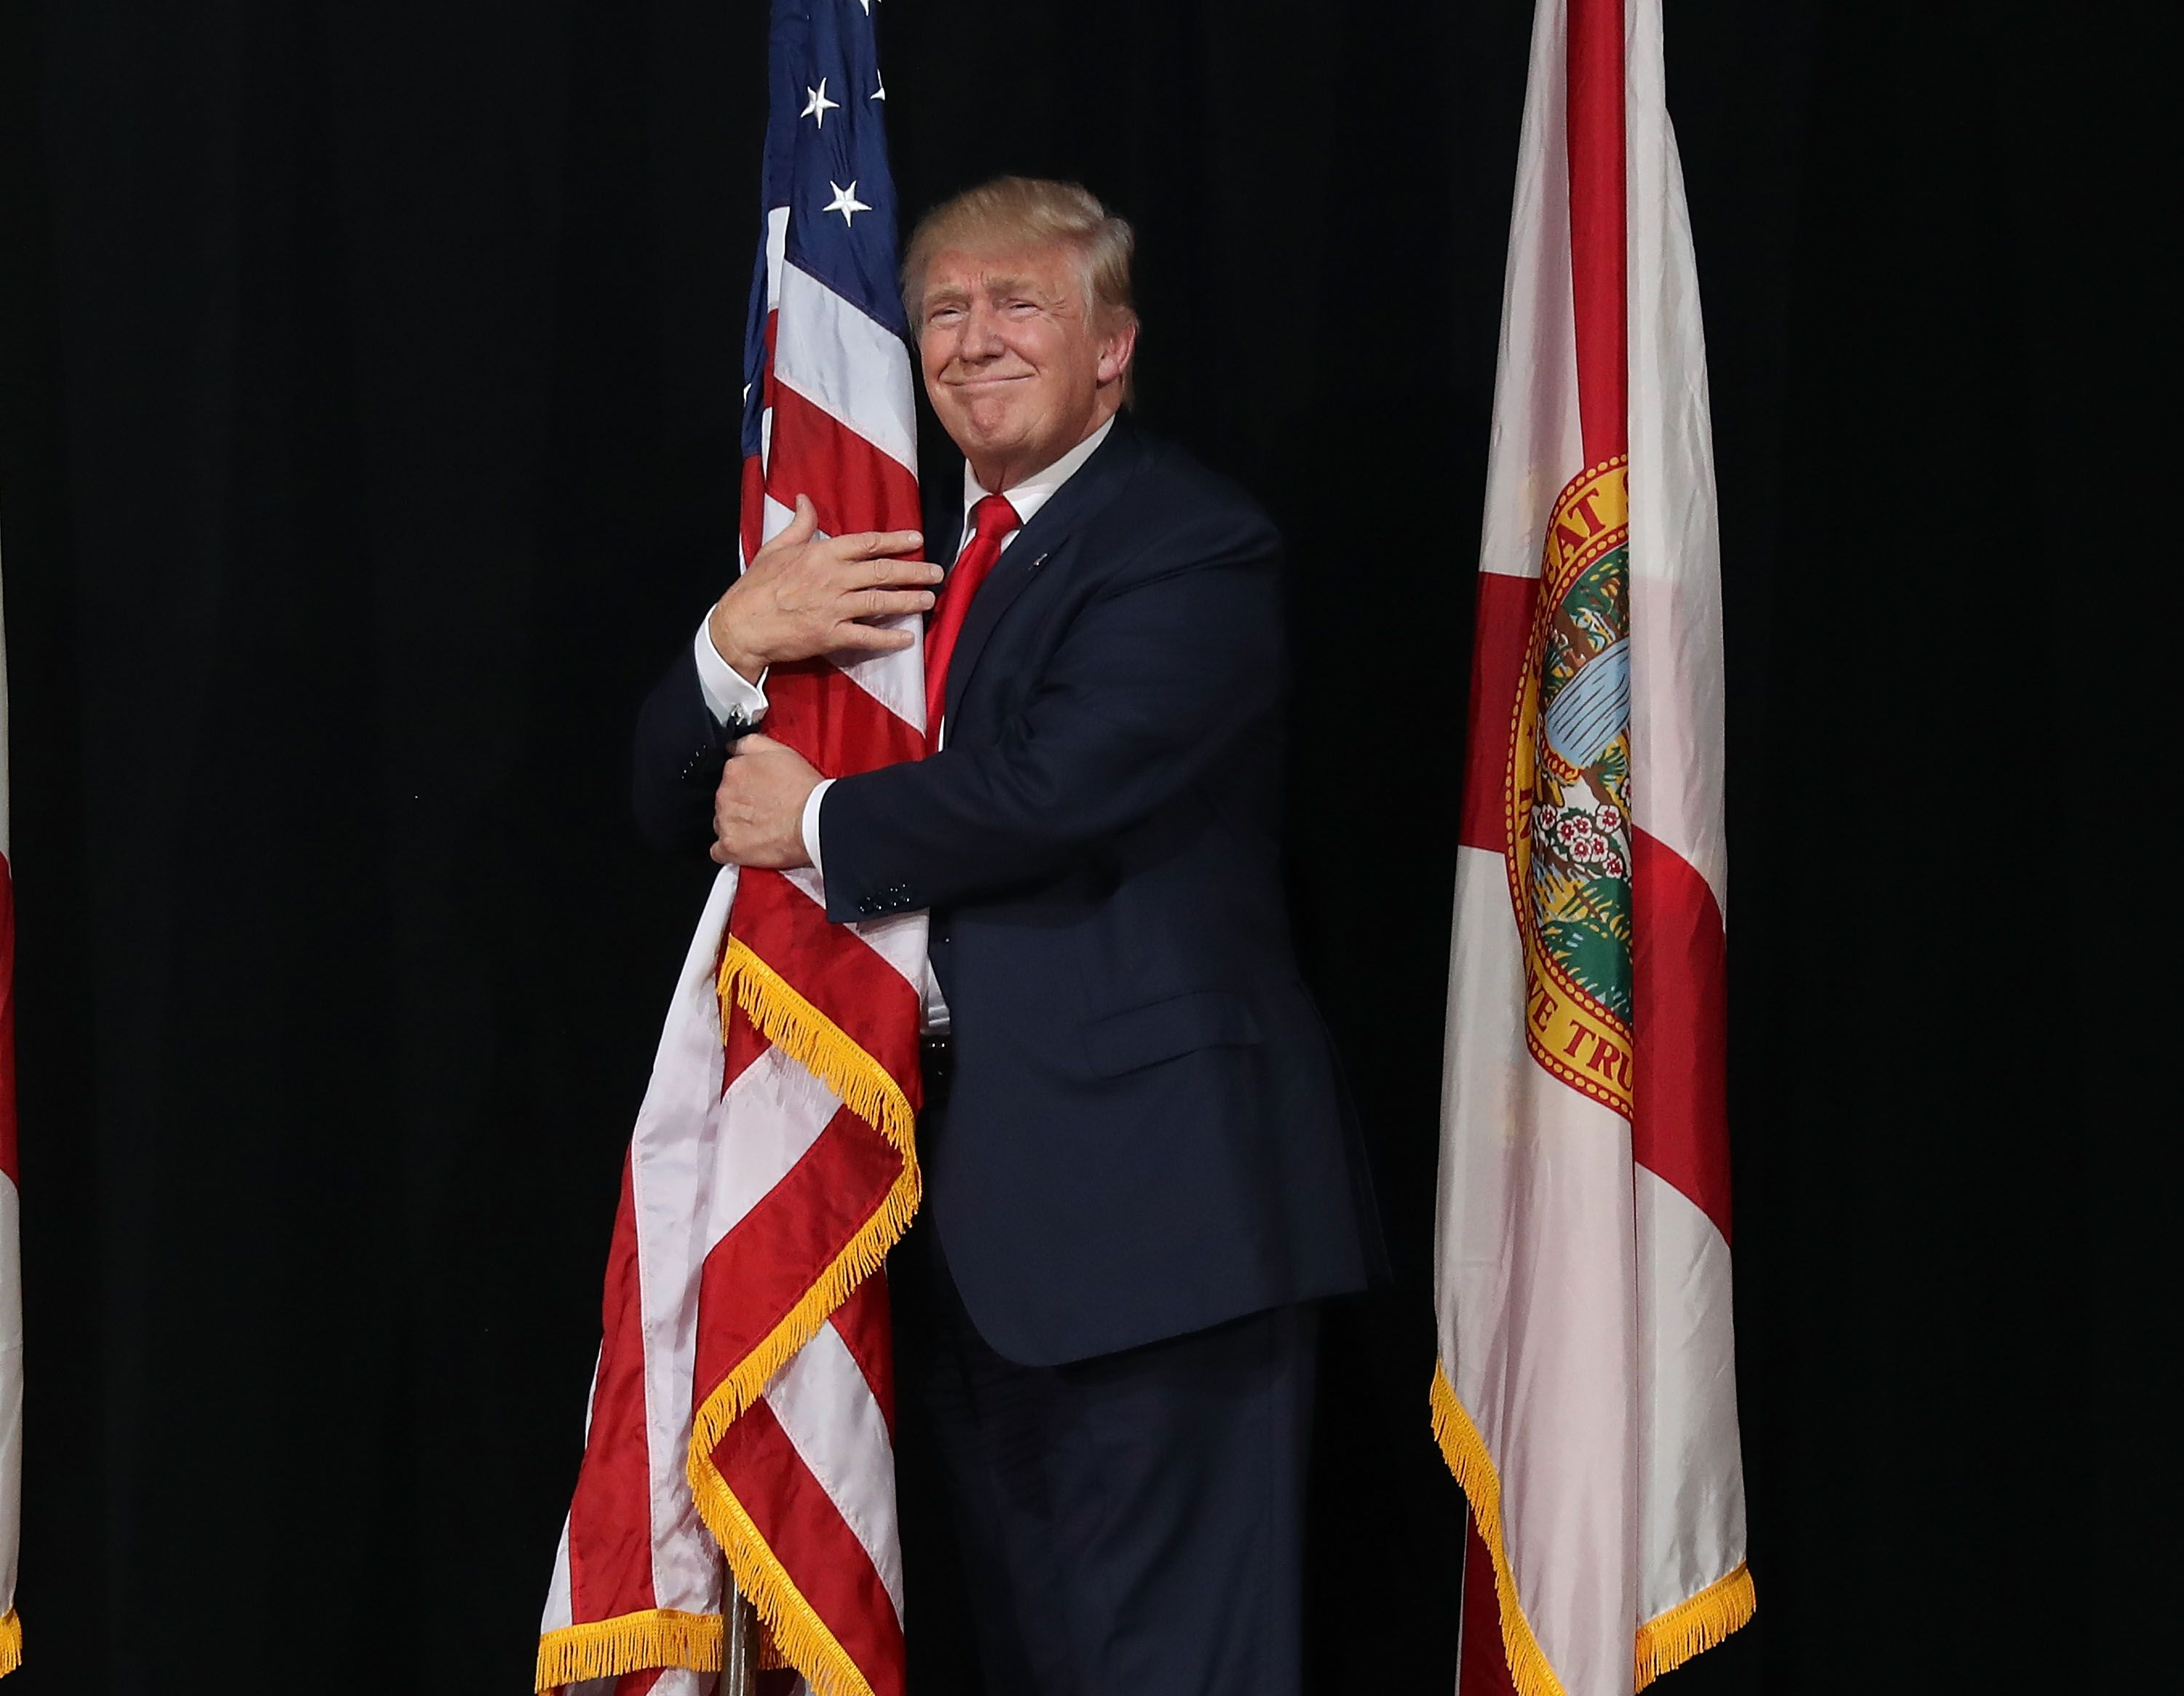 To Celebrate Flag Day, the White House Tweeted a Weird Picture of Trump Hugging Old Glory